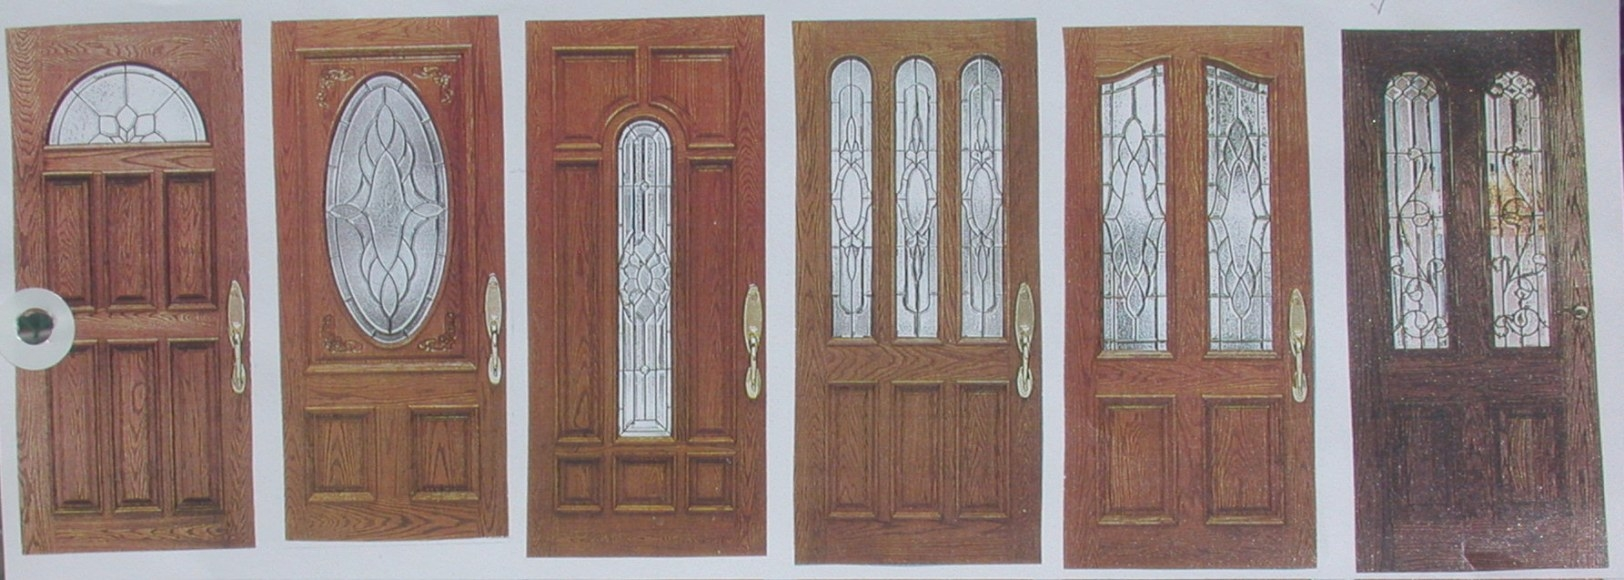 Loews Doors & Wide Entry Doors pertaining to Exterior Door With Built In Pet Door Lowes